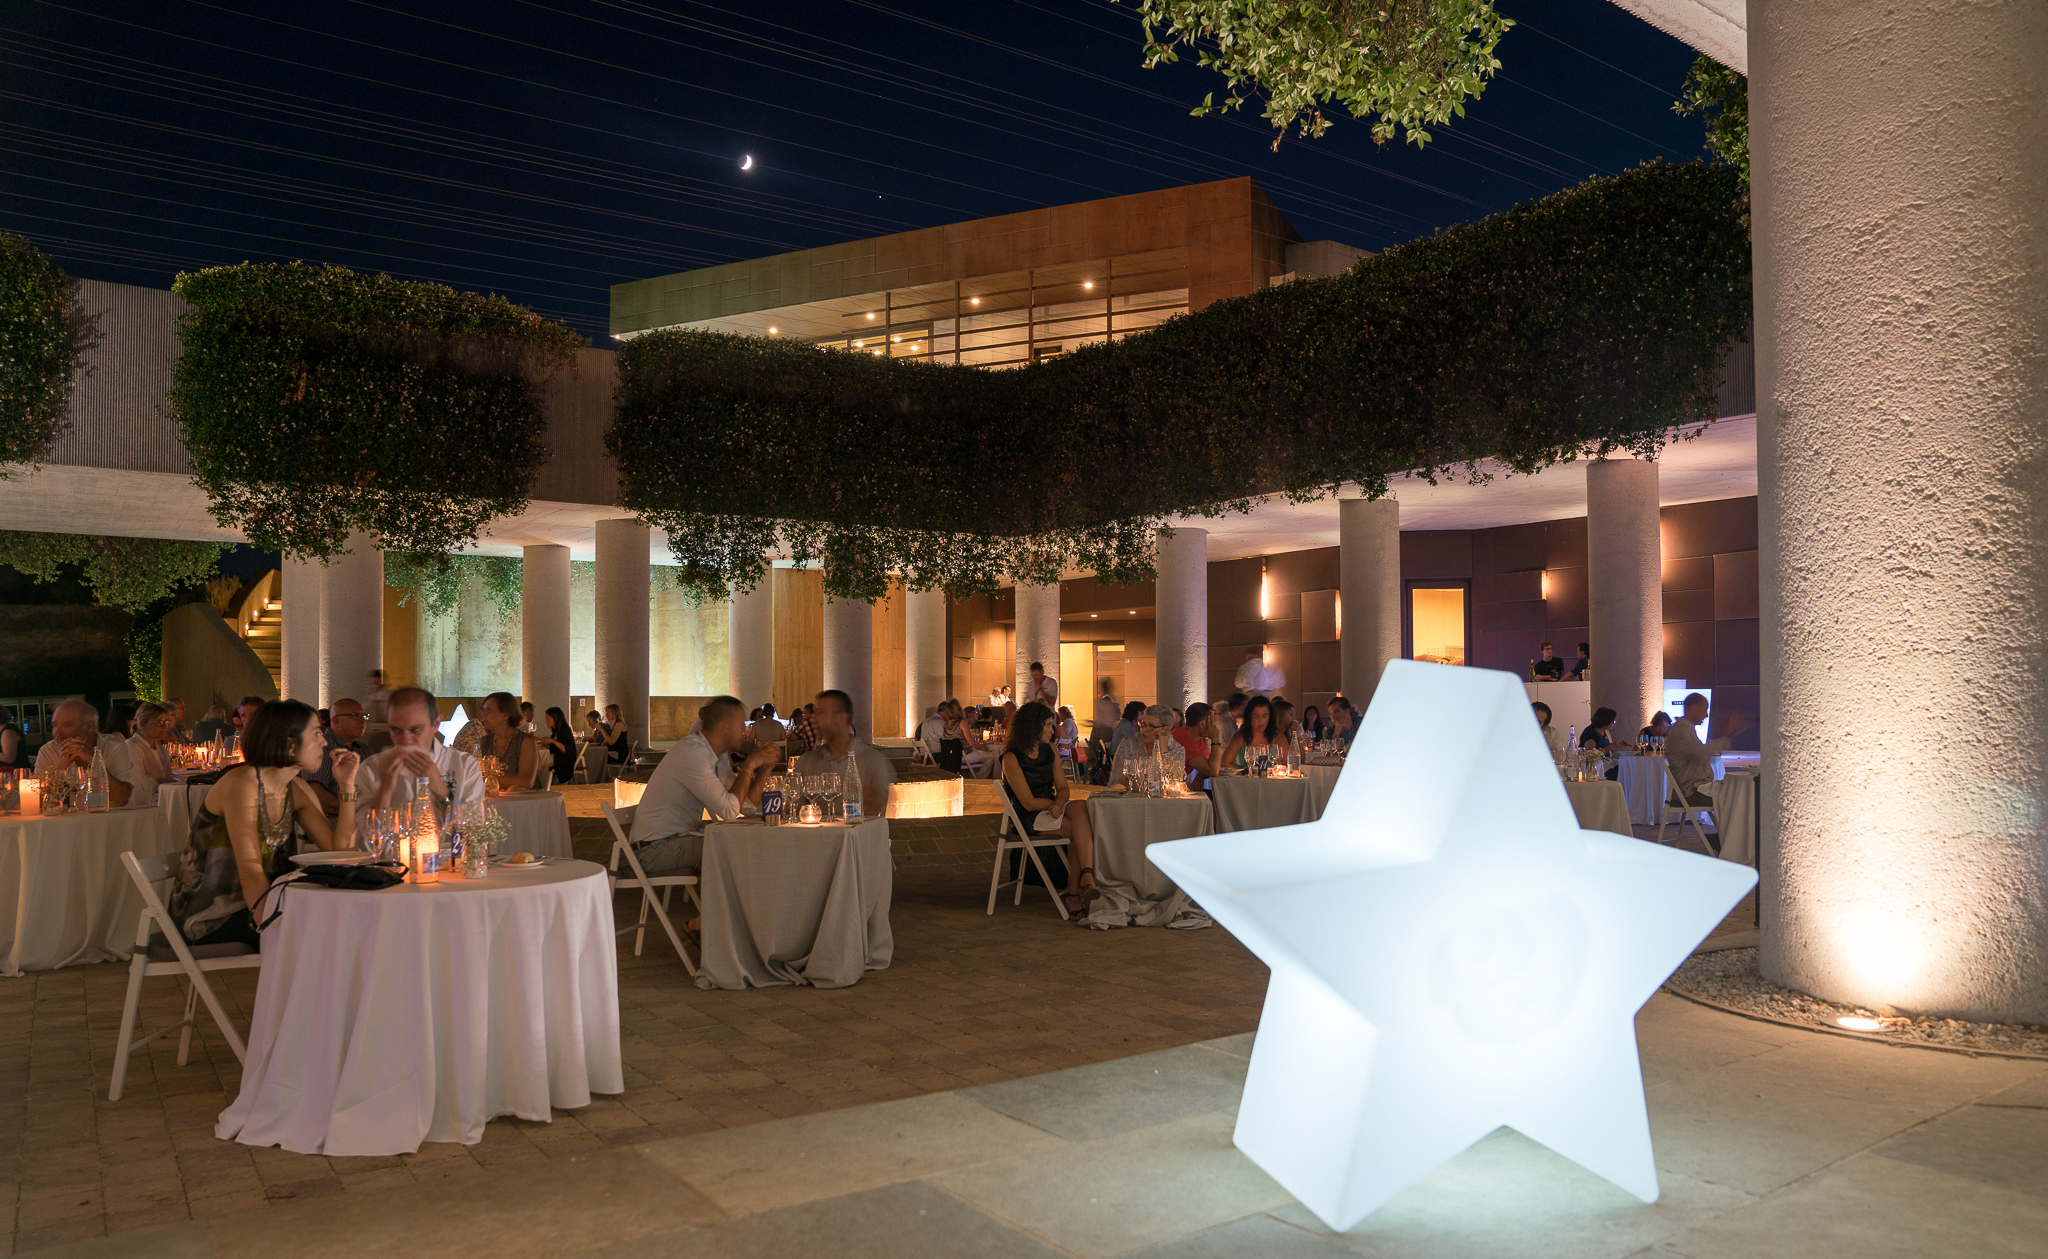 Five essentials at the Starry Night at Bodegas Torres